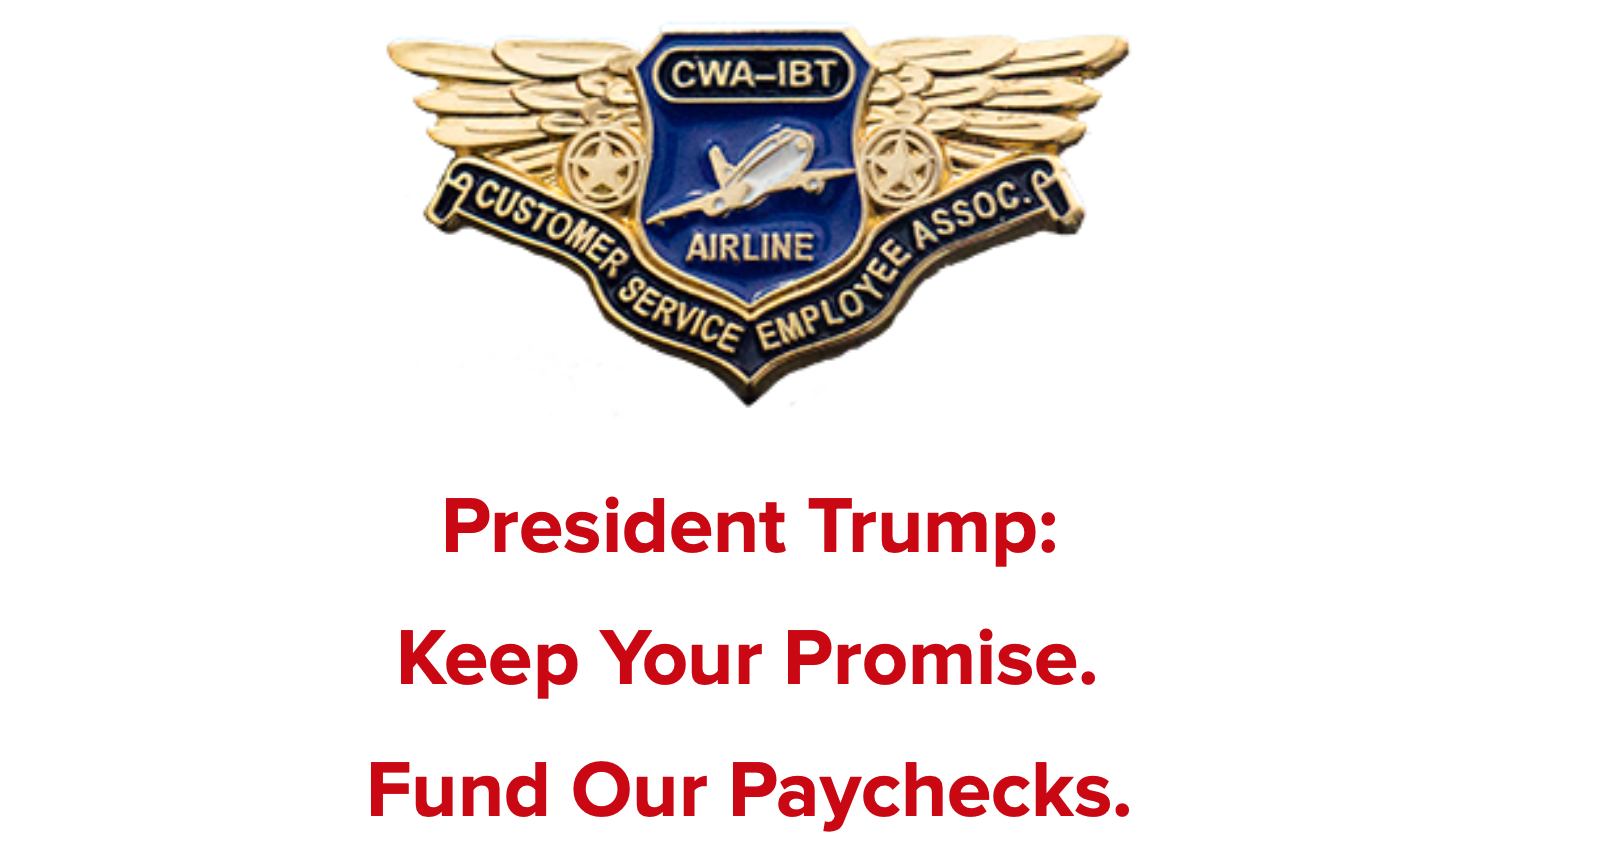 Fund Our Paychecks Alert